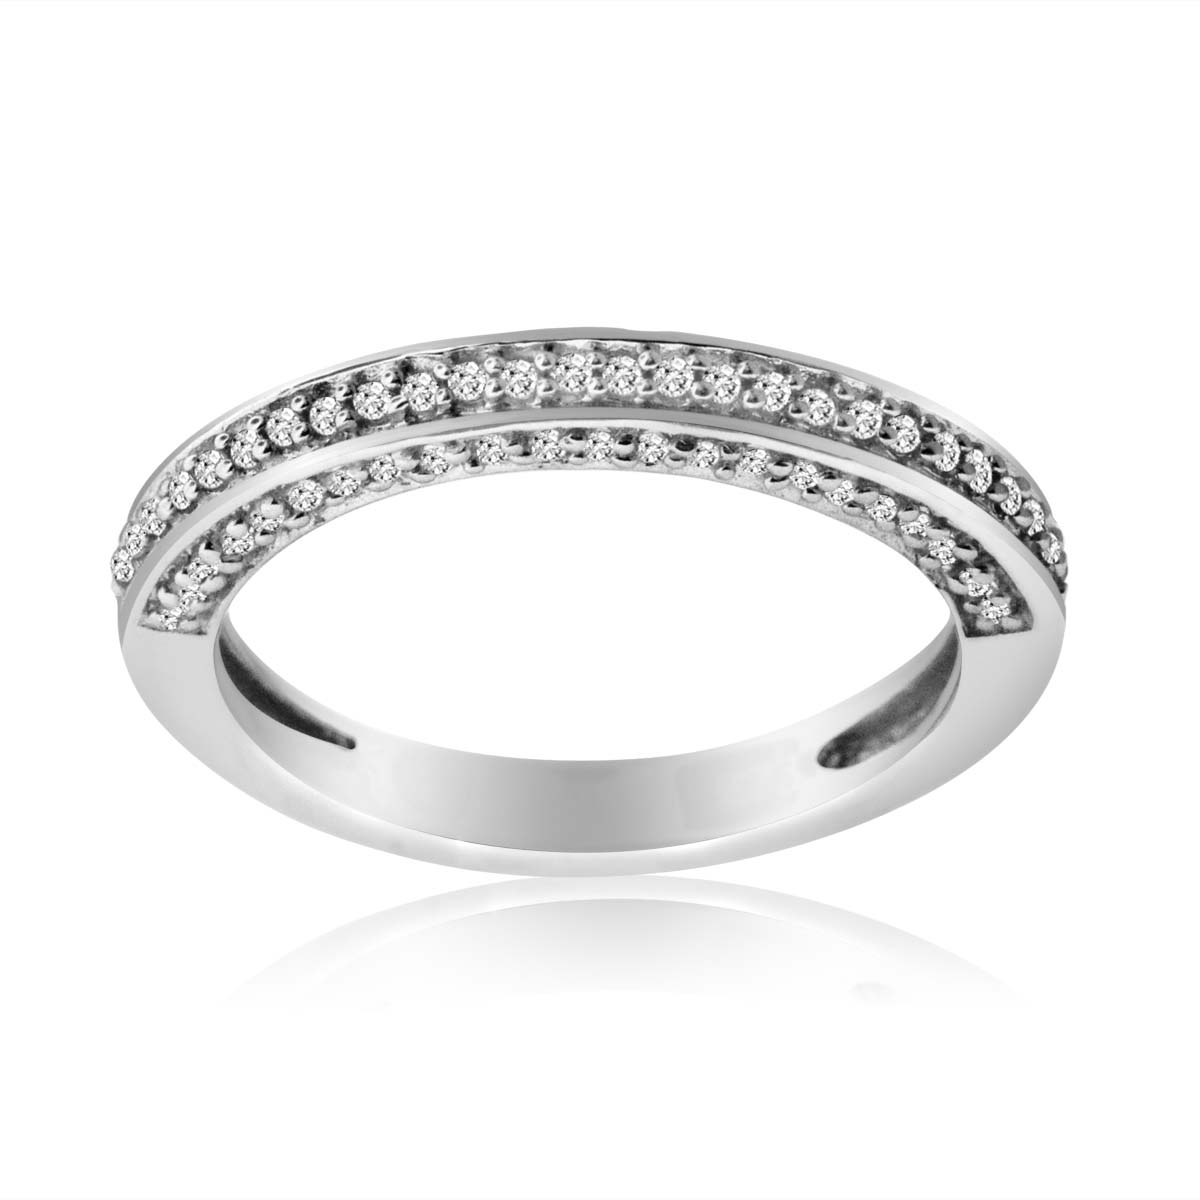 10k White Gold 3/8ct TDW Diamond Wedding Band (H-I, I1-I2) at Sears.com